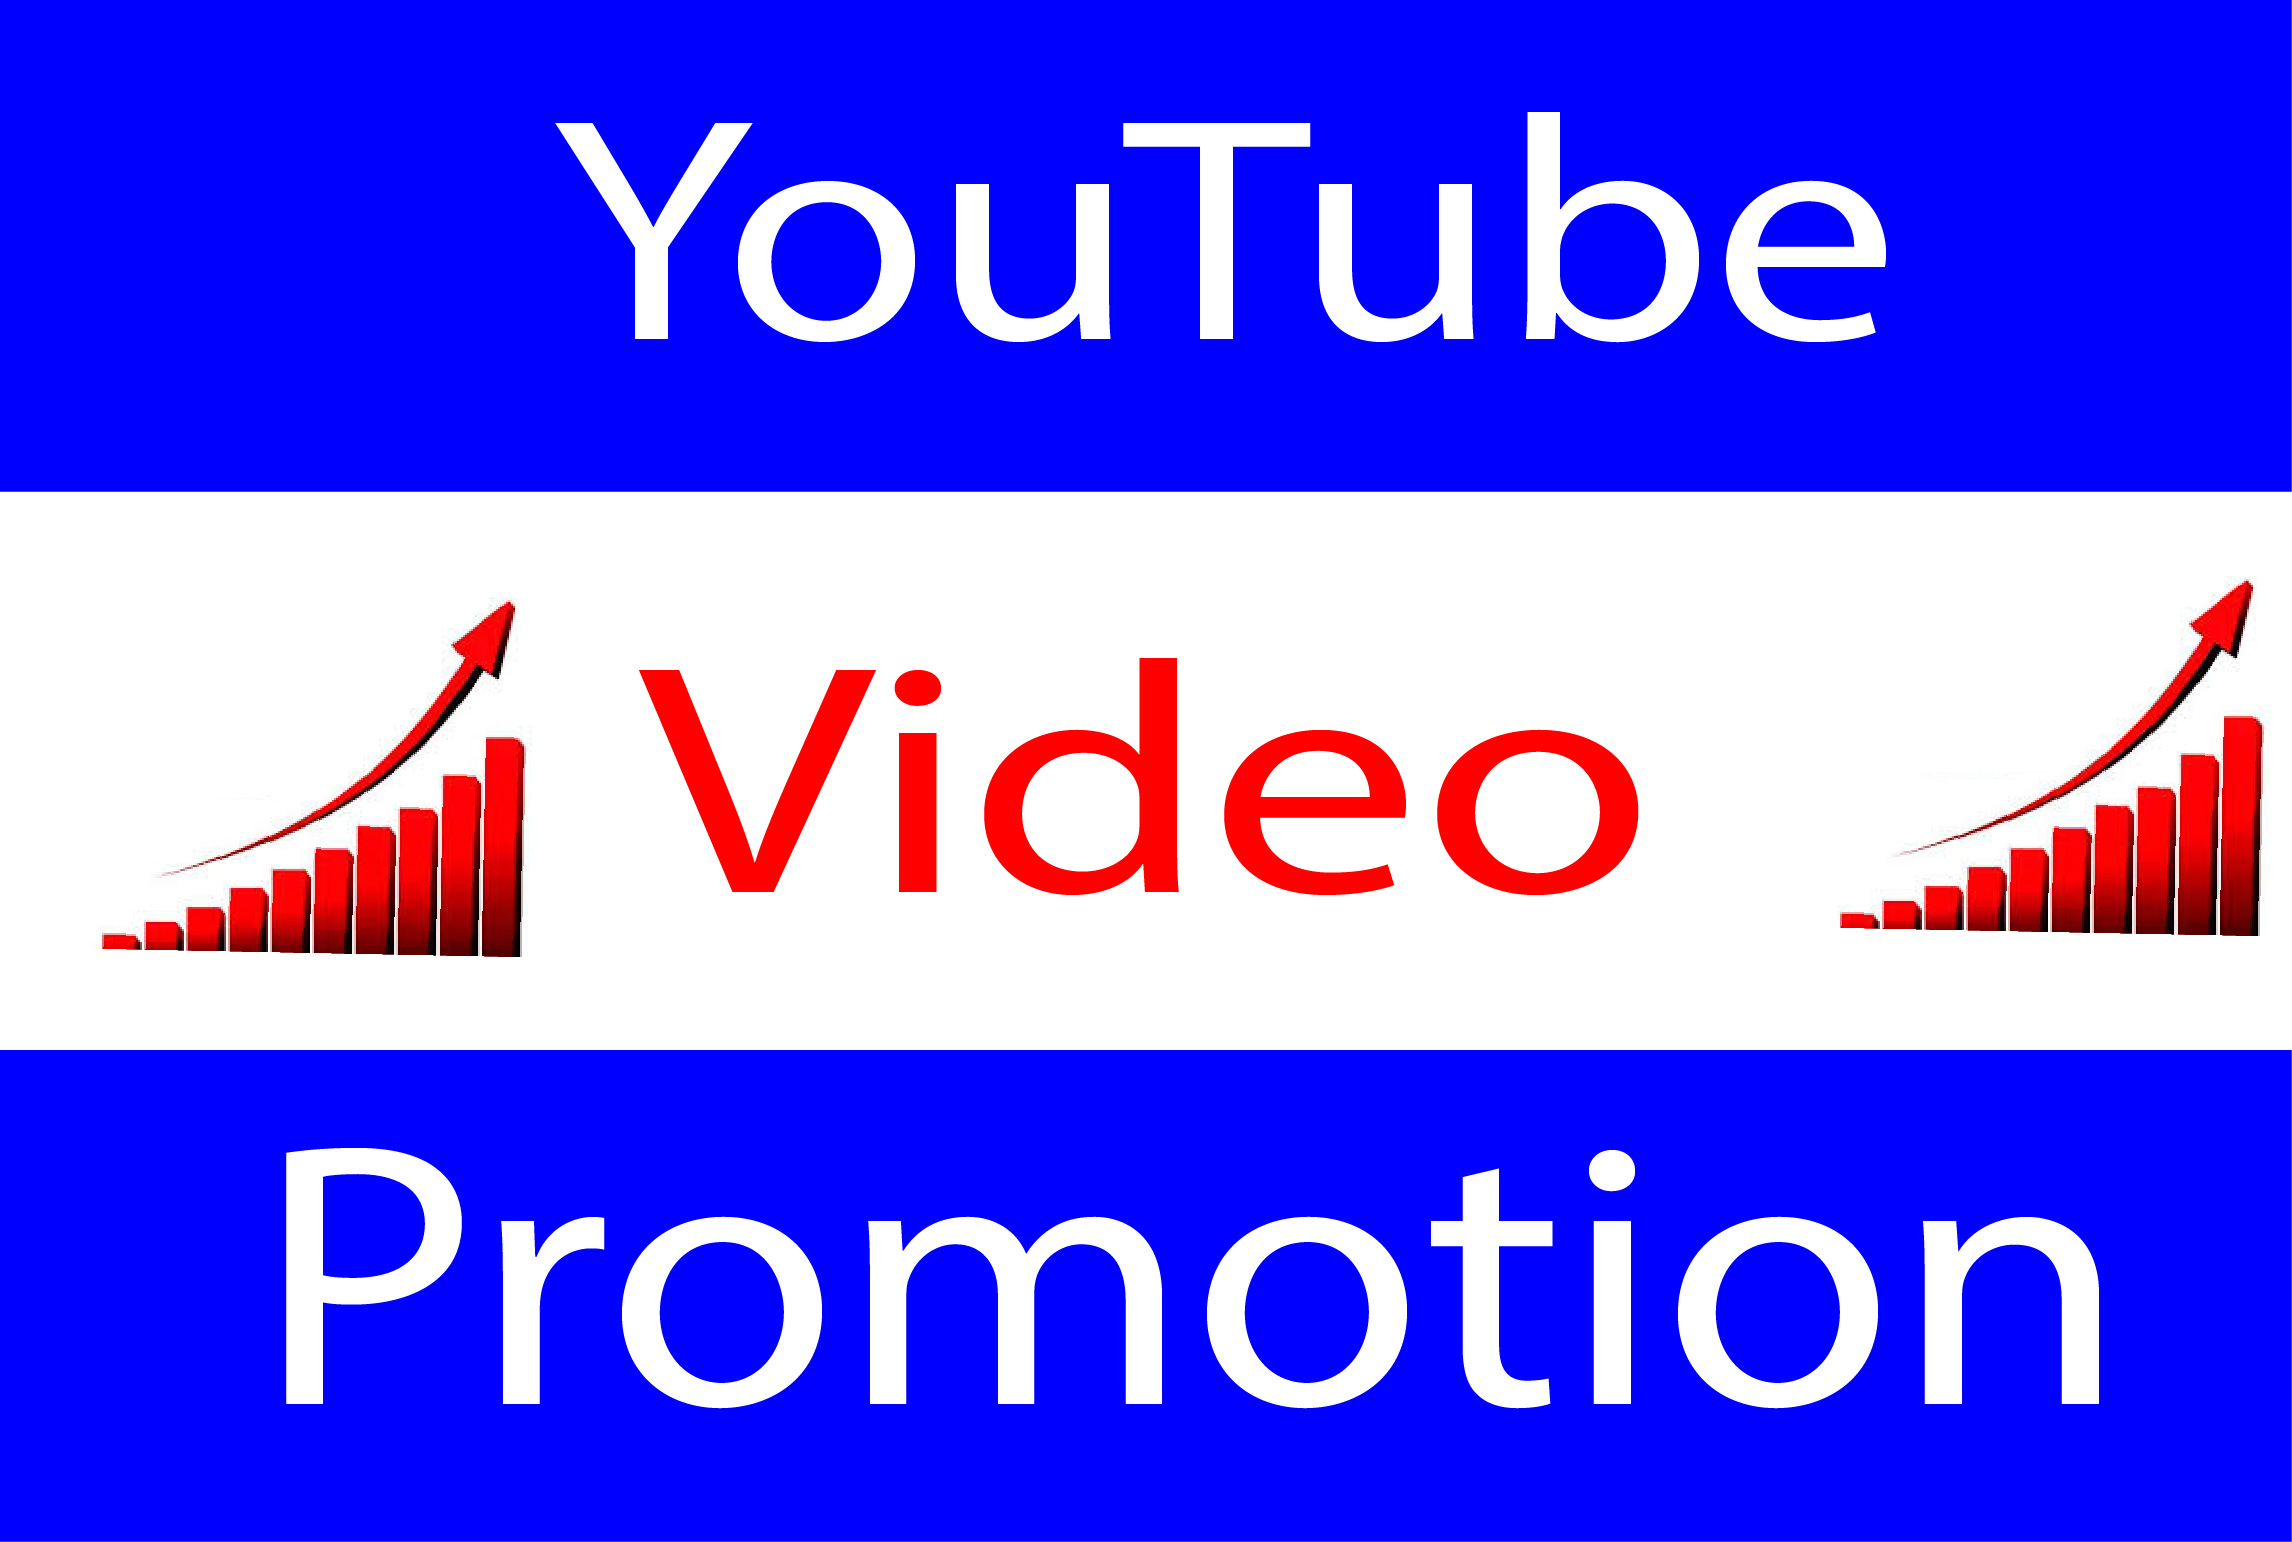 YouTube Video Promotion High Quality Worldwide Real User